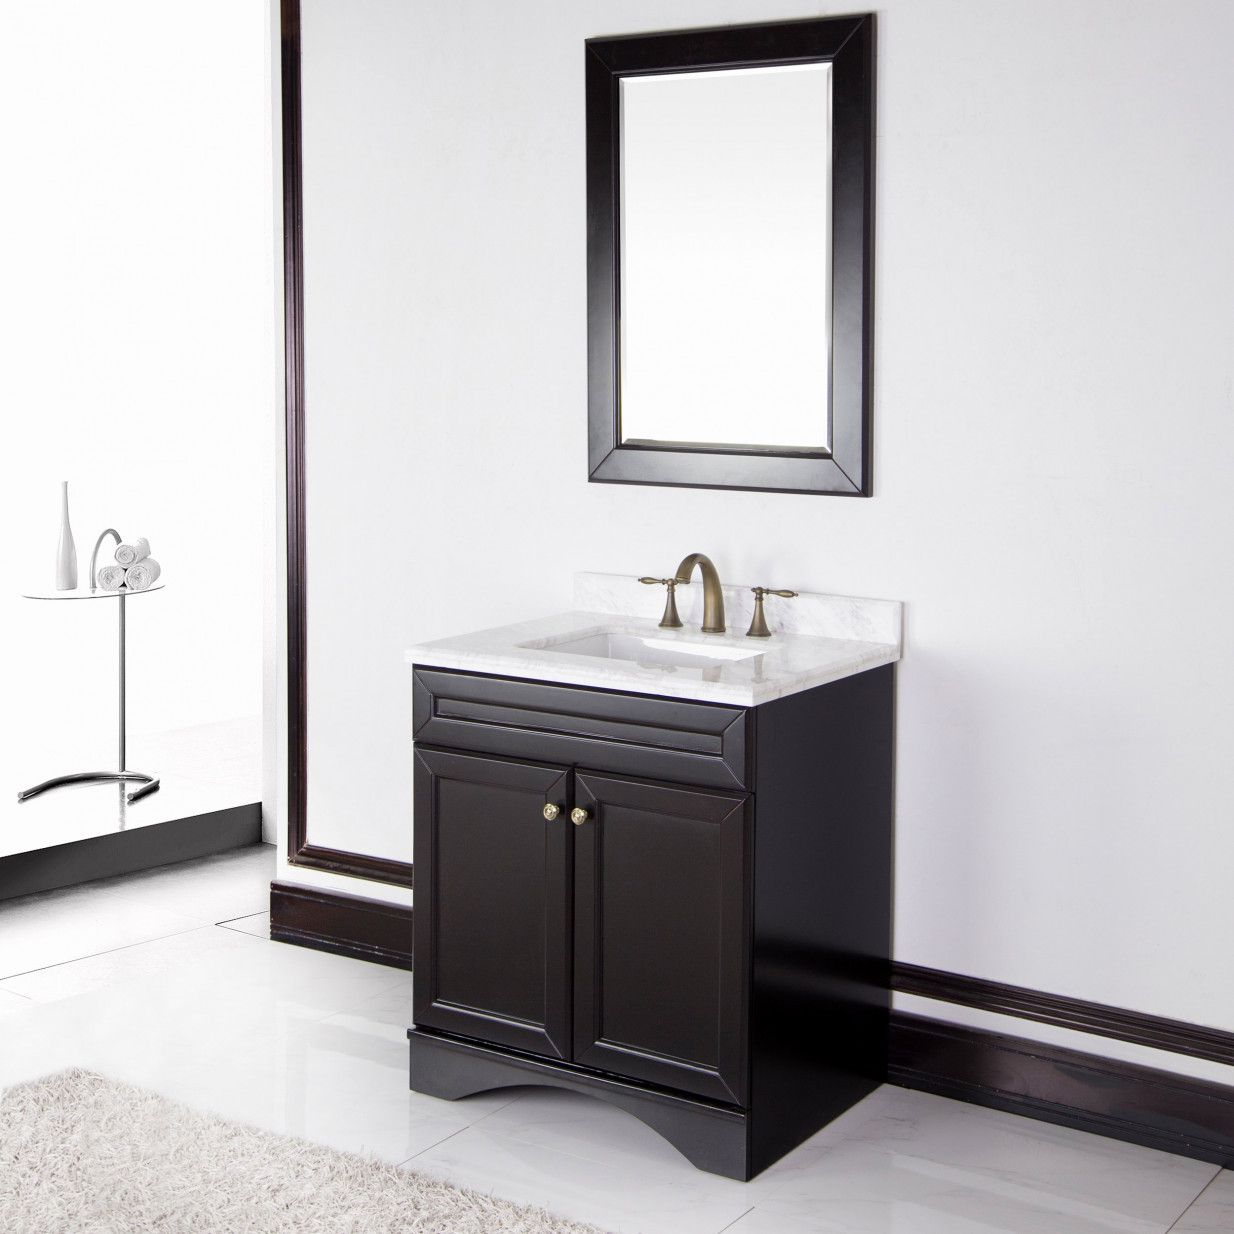 bathroom cabinets company.  Cabinets 55 Bathroom Cabinets Company  Interior Paint Color Trends Check More At  Http Throughout